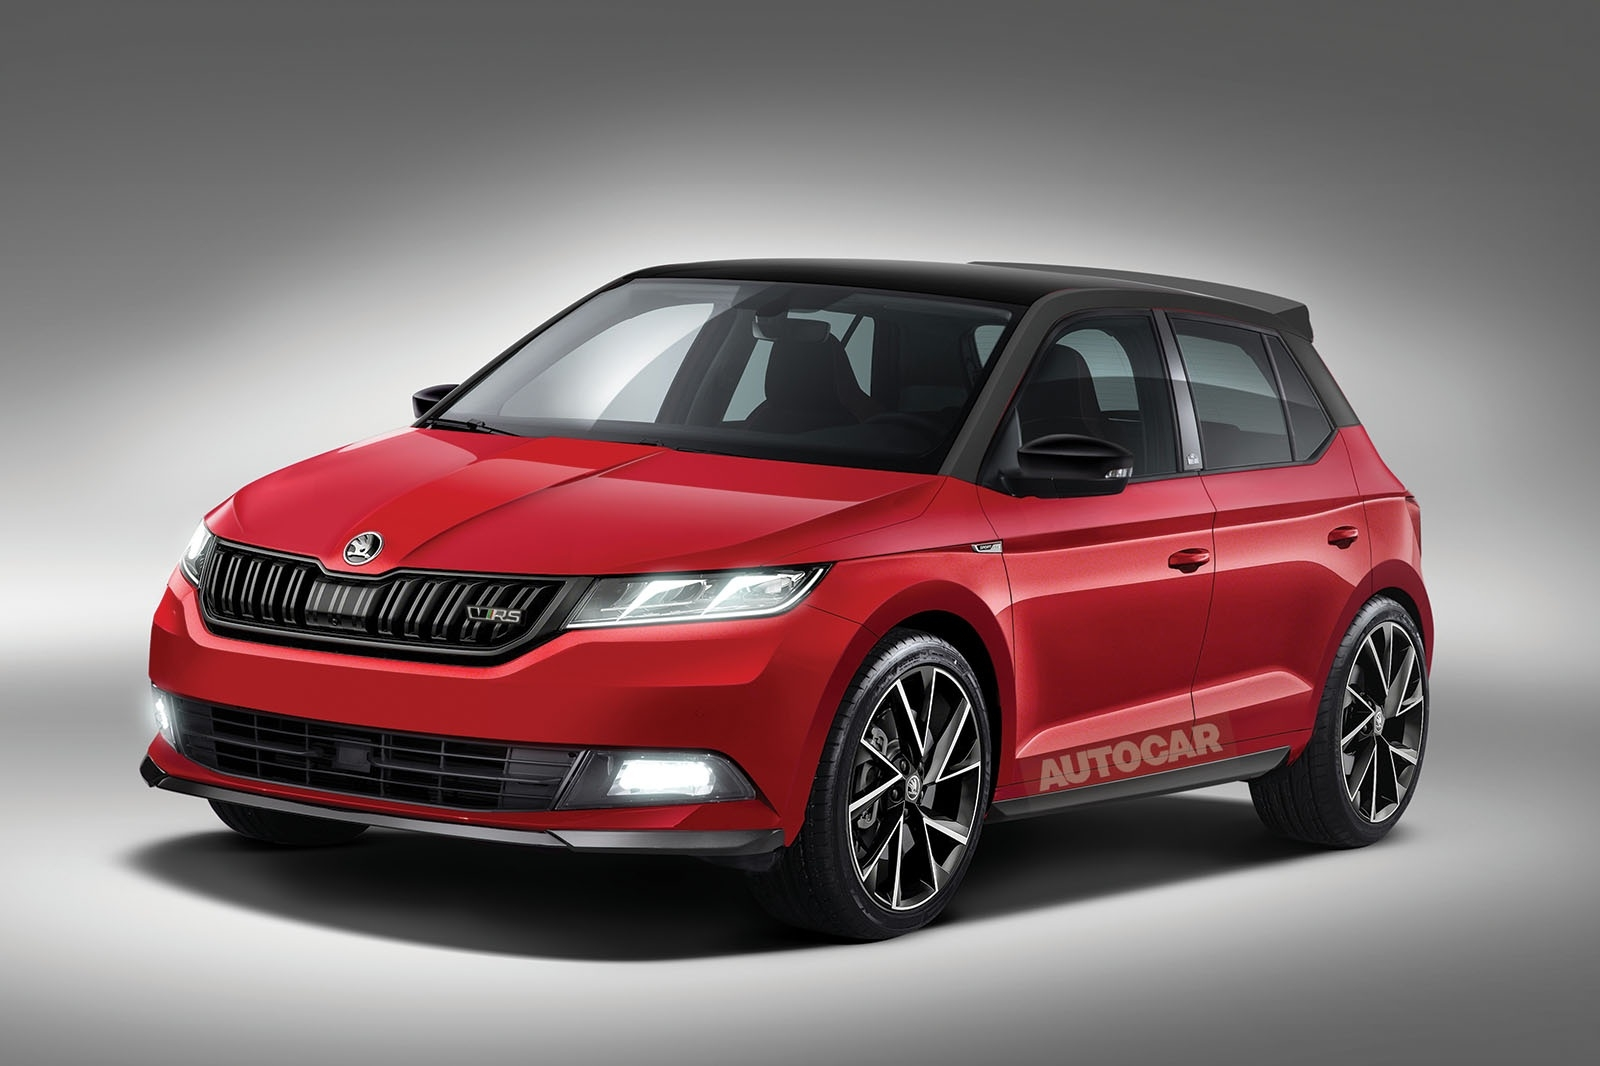 71 All New 2020 Skoda Roomster Specs and Review